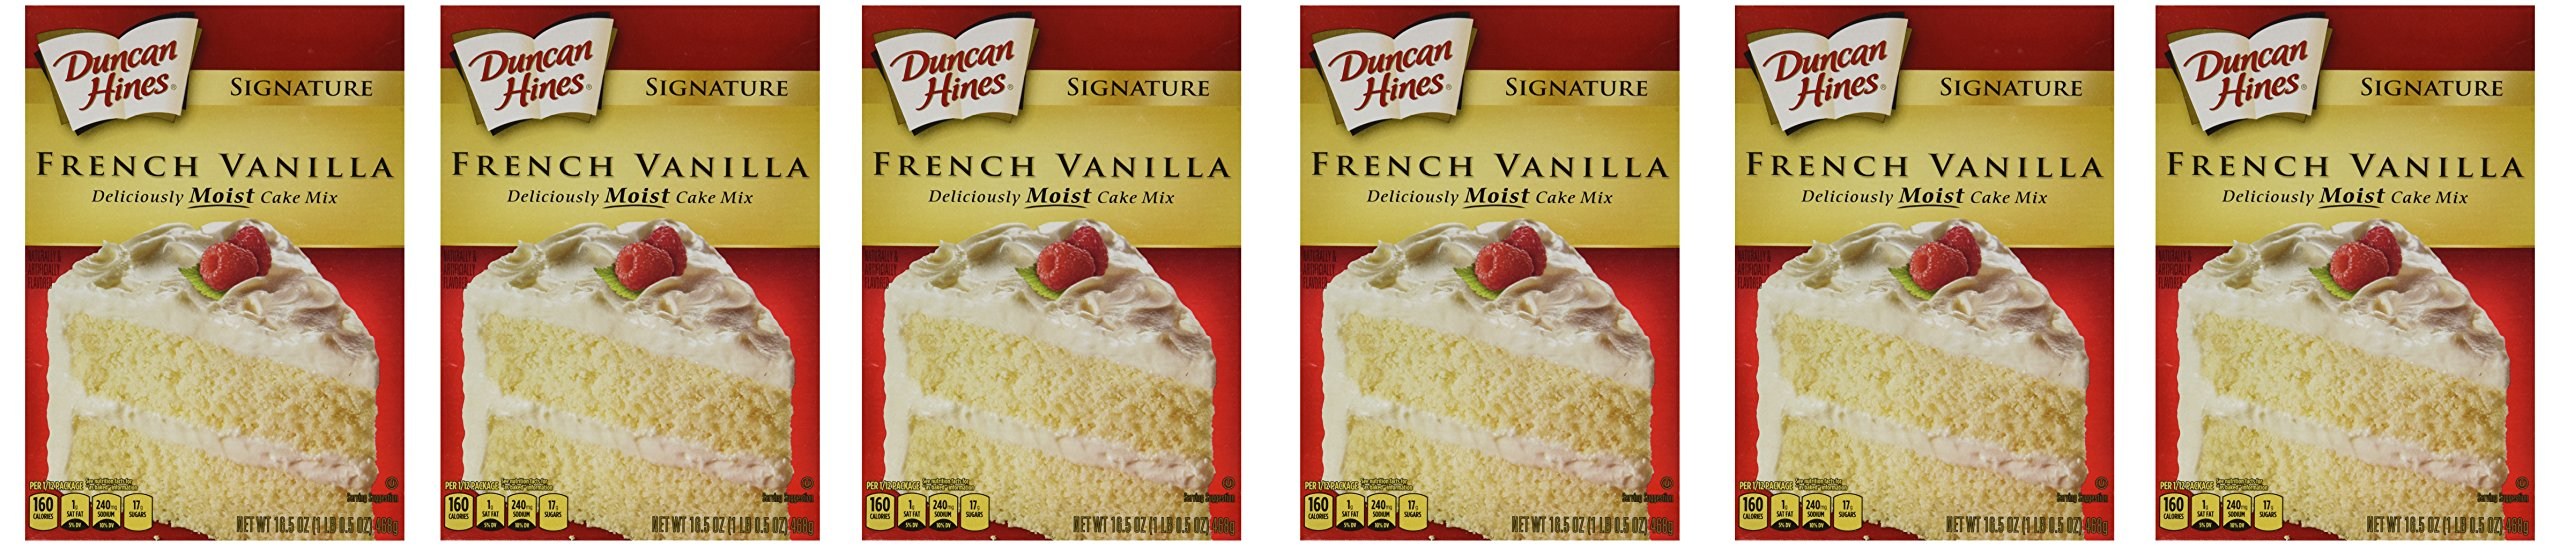 Duncan Hines Signature French Vanilla Cake Mix, 16.5-Ounce Boxes (Pack of 6)